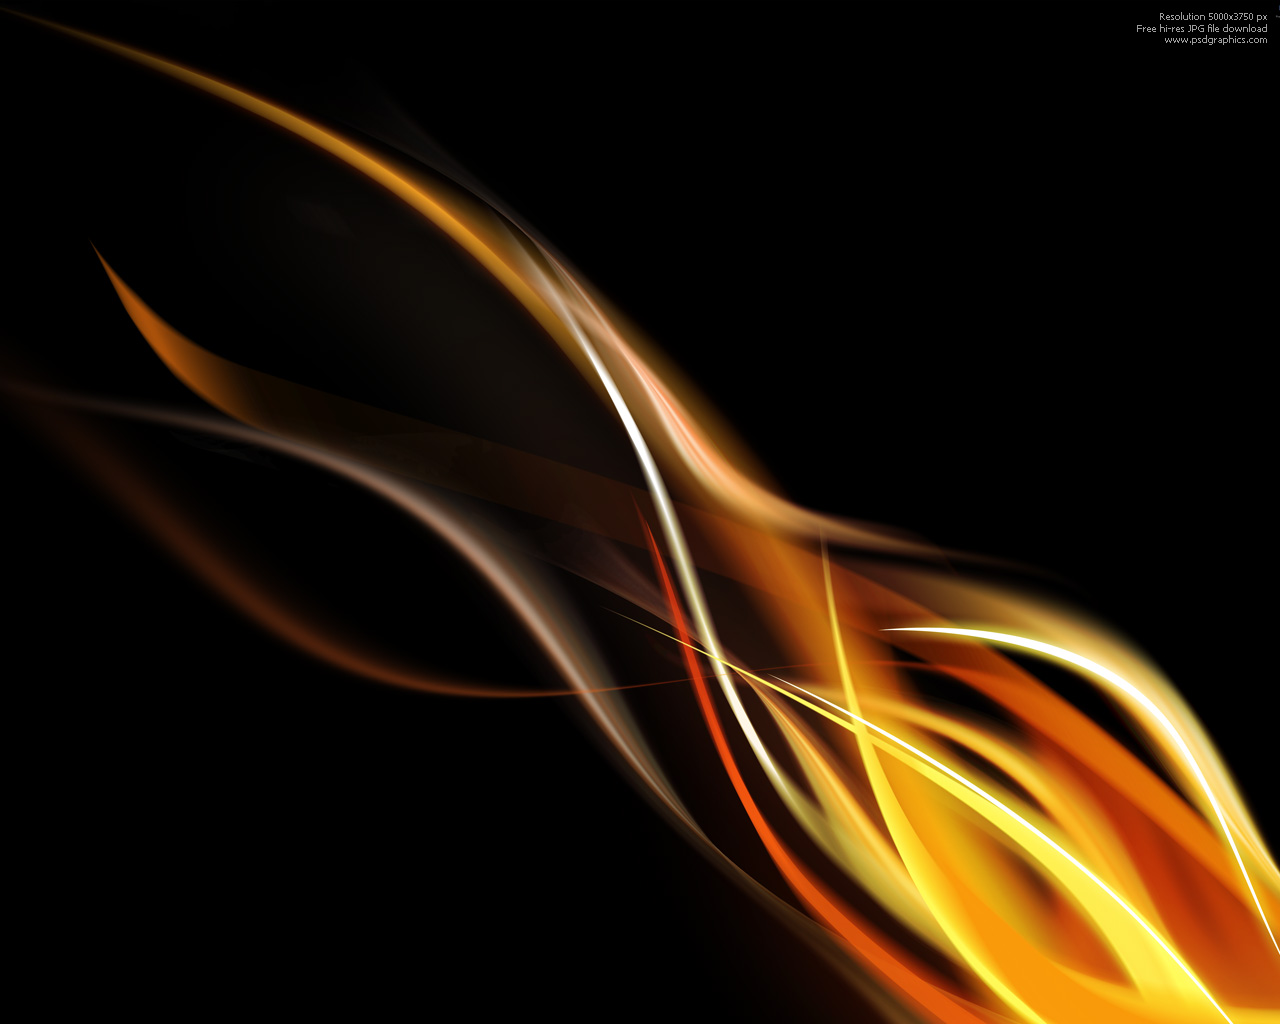 Flame background 1280×1024